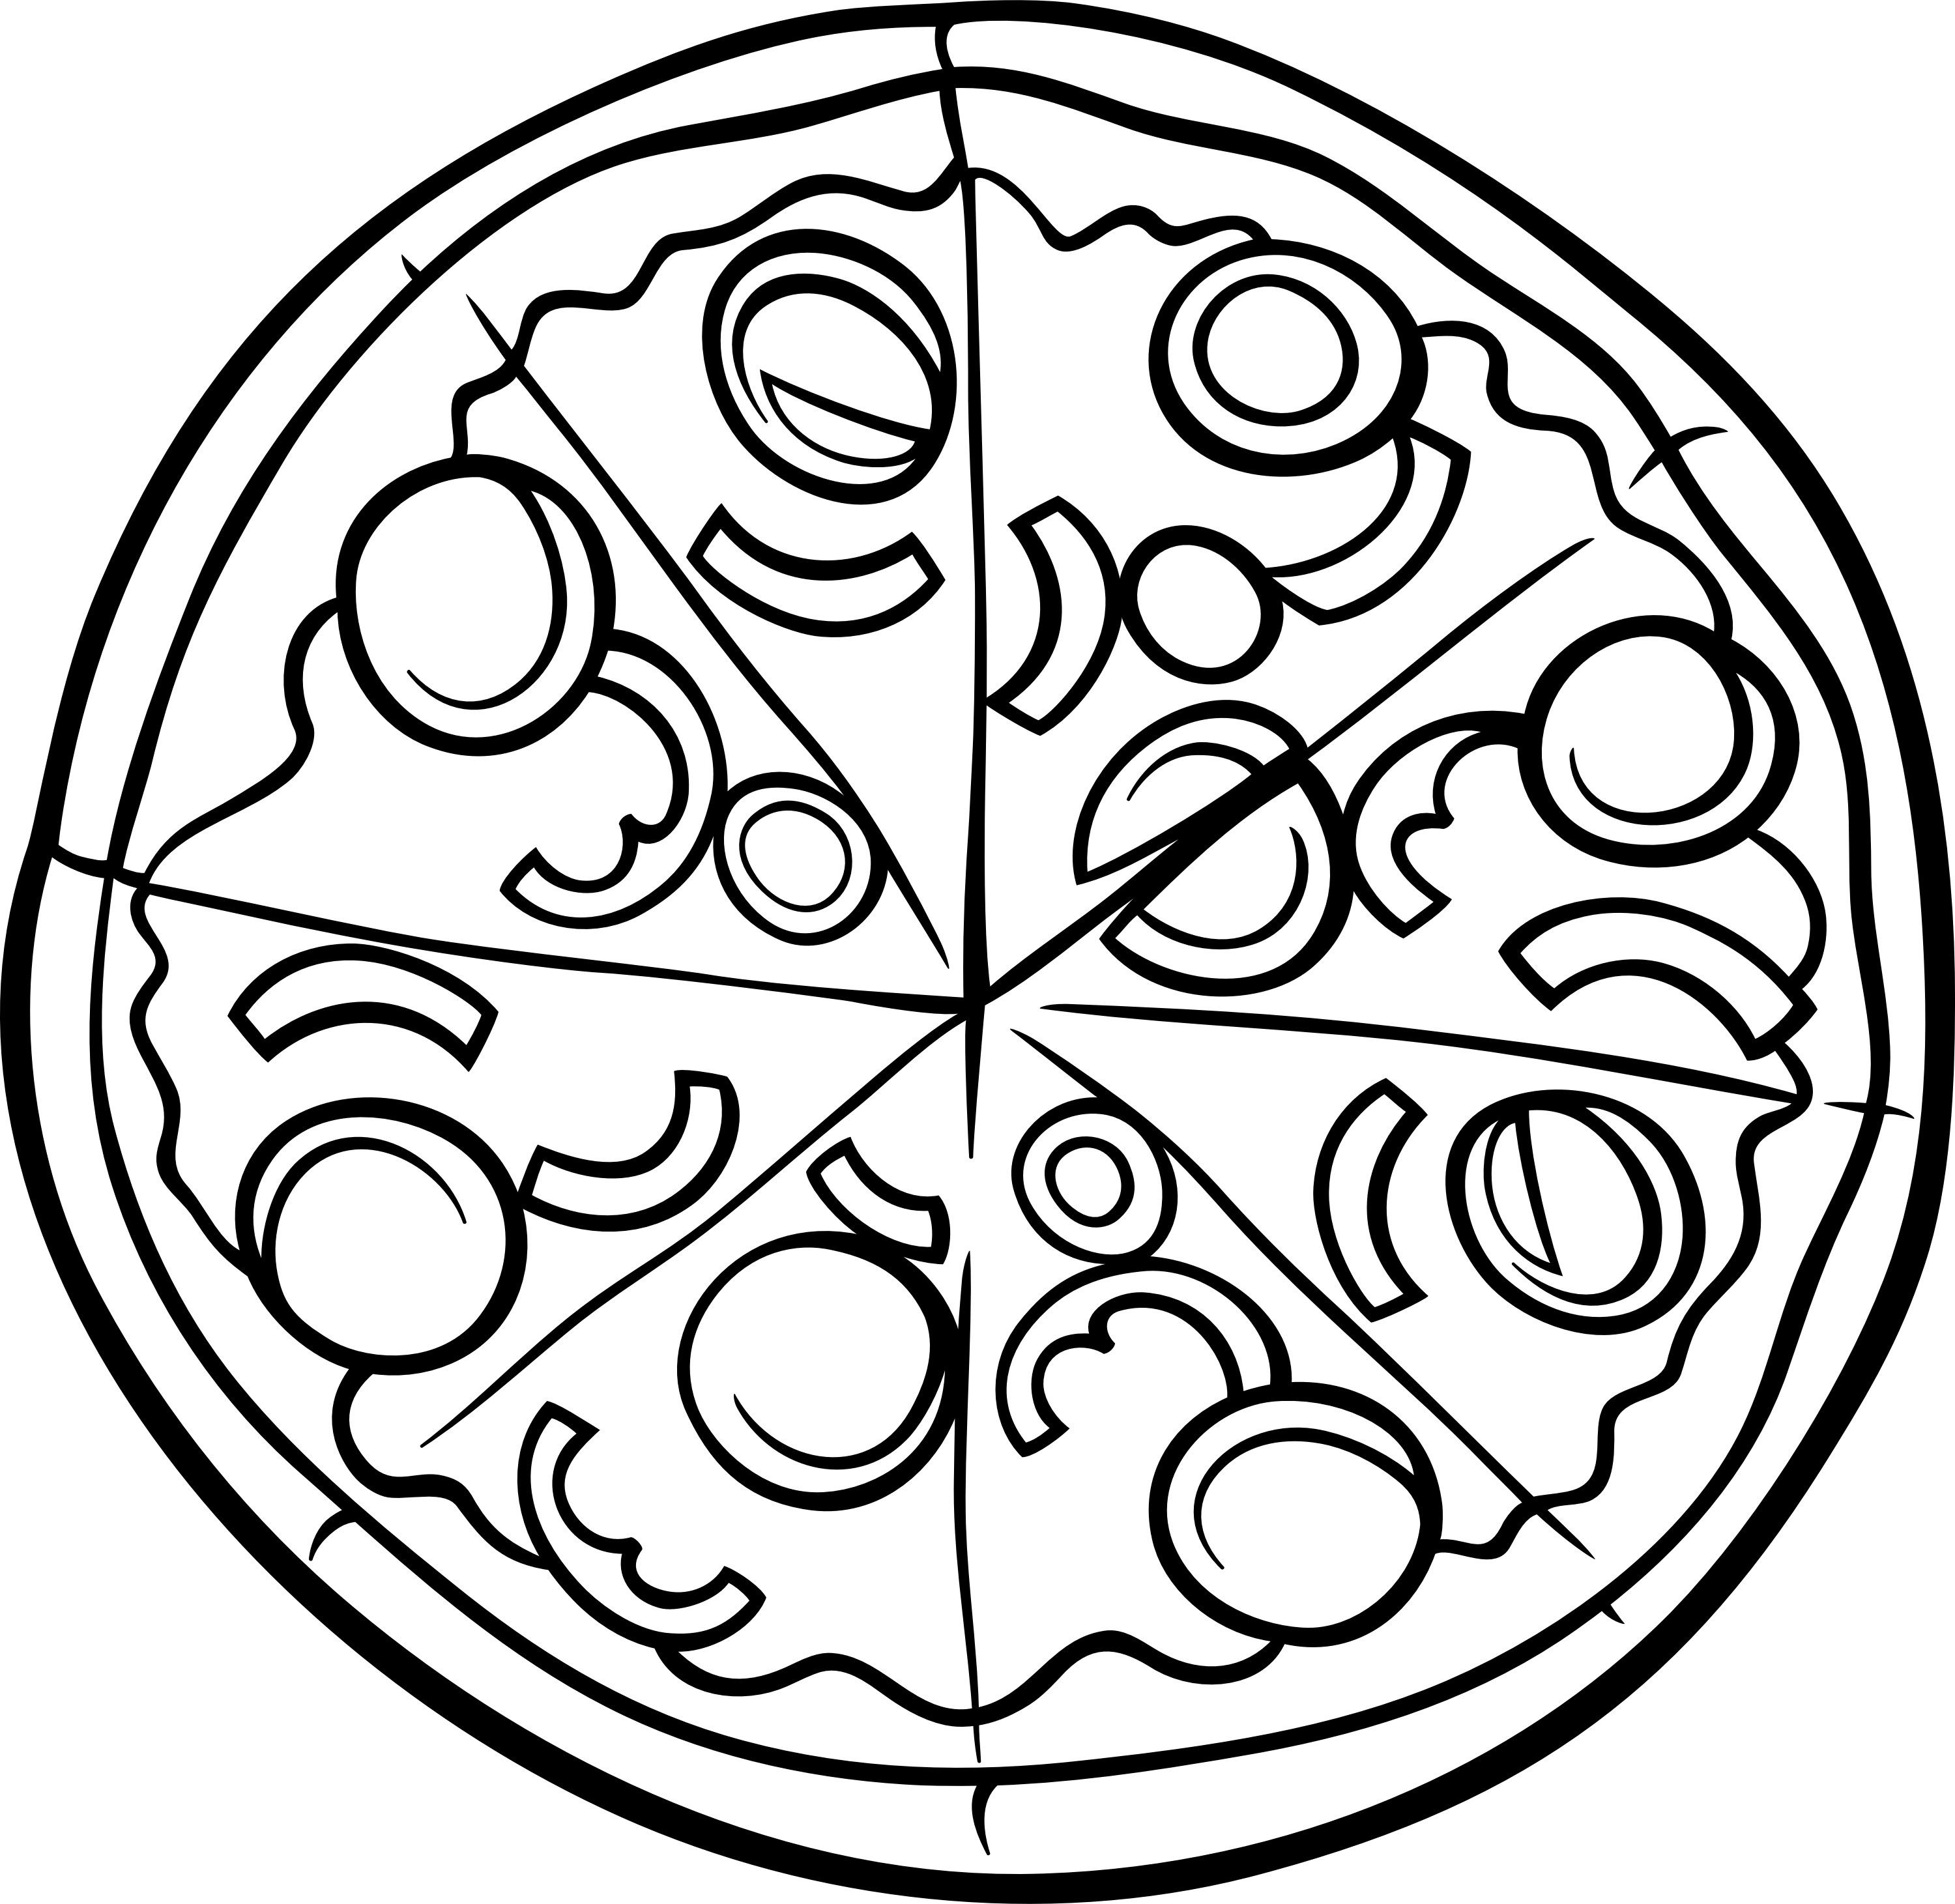 Pizza Coloring Page Printable Pizza Coloring Page Food Coloring